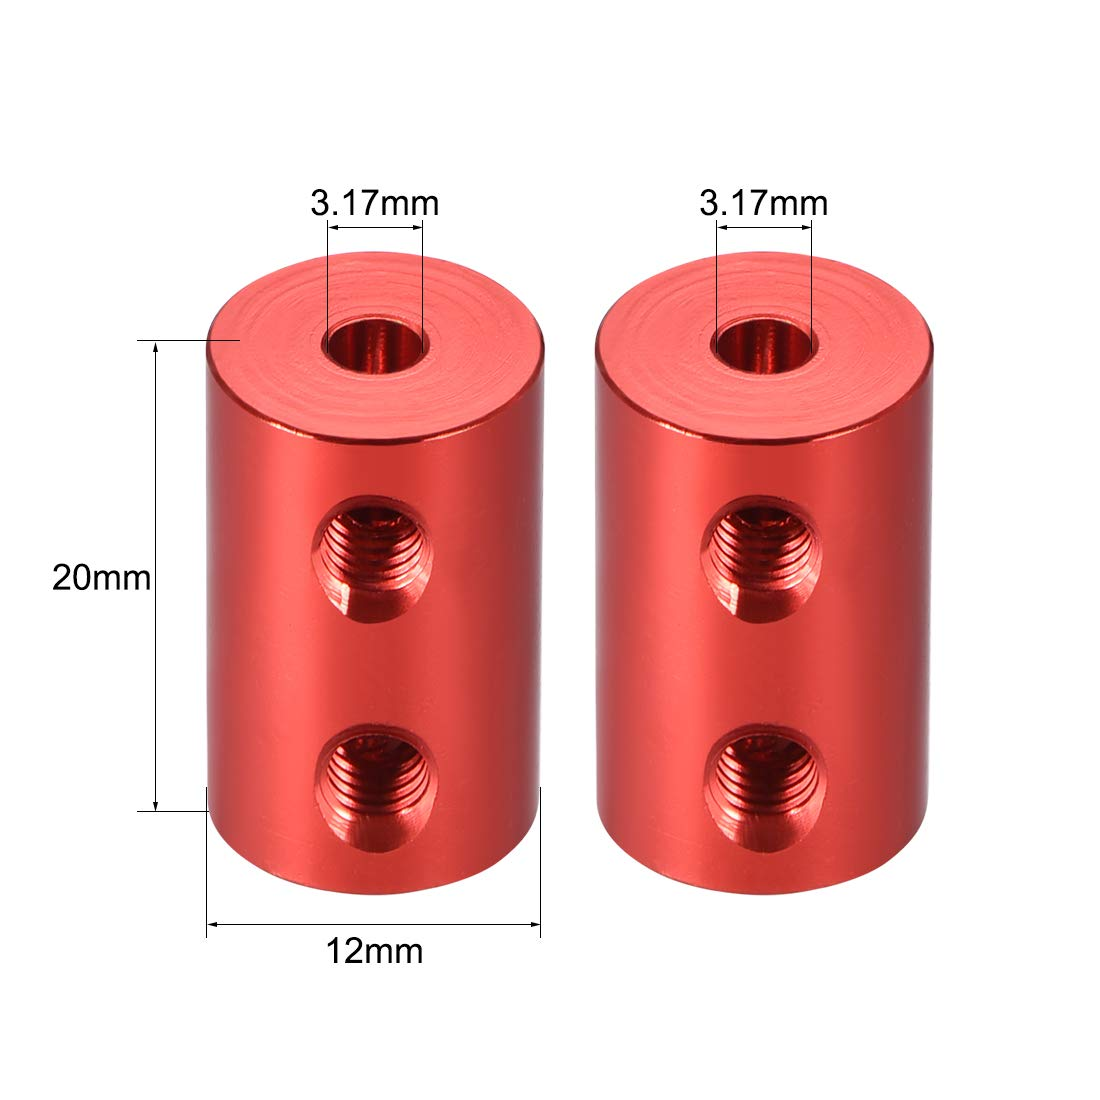 uxcell Shaft Coupling 3.17mm to 3.17mm Bore L20xD12 Robot Motor Wheel Rigid Coupler Connector Red